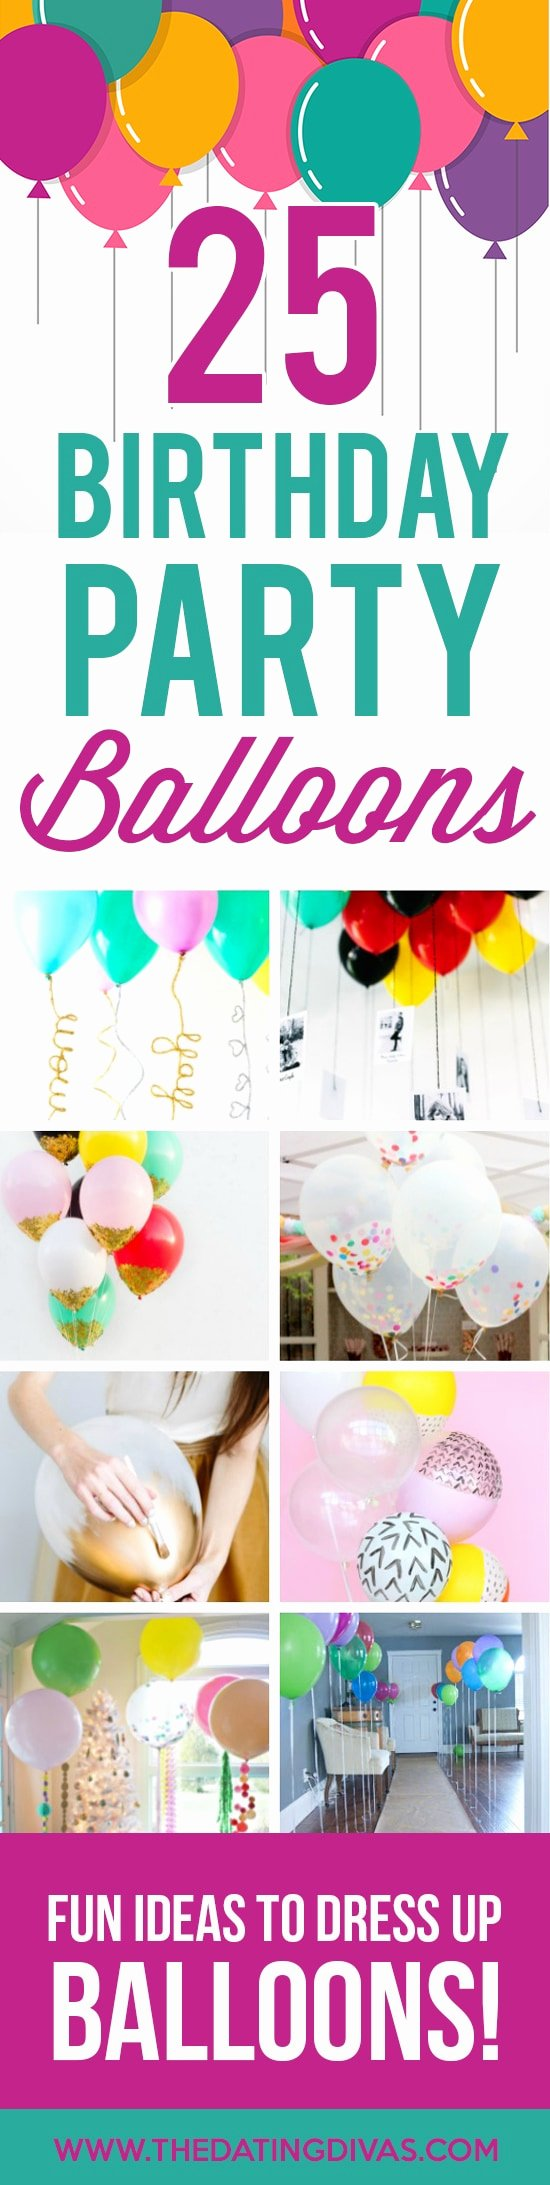 Latest Birthday Decoration Ideas at Home Awesome 100 Birthday Party Decoration Ideas the Dating Divas